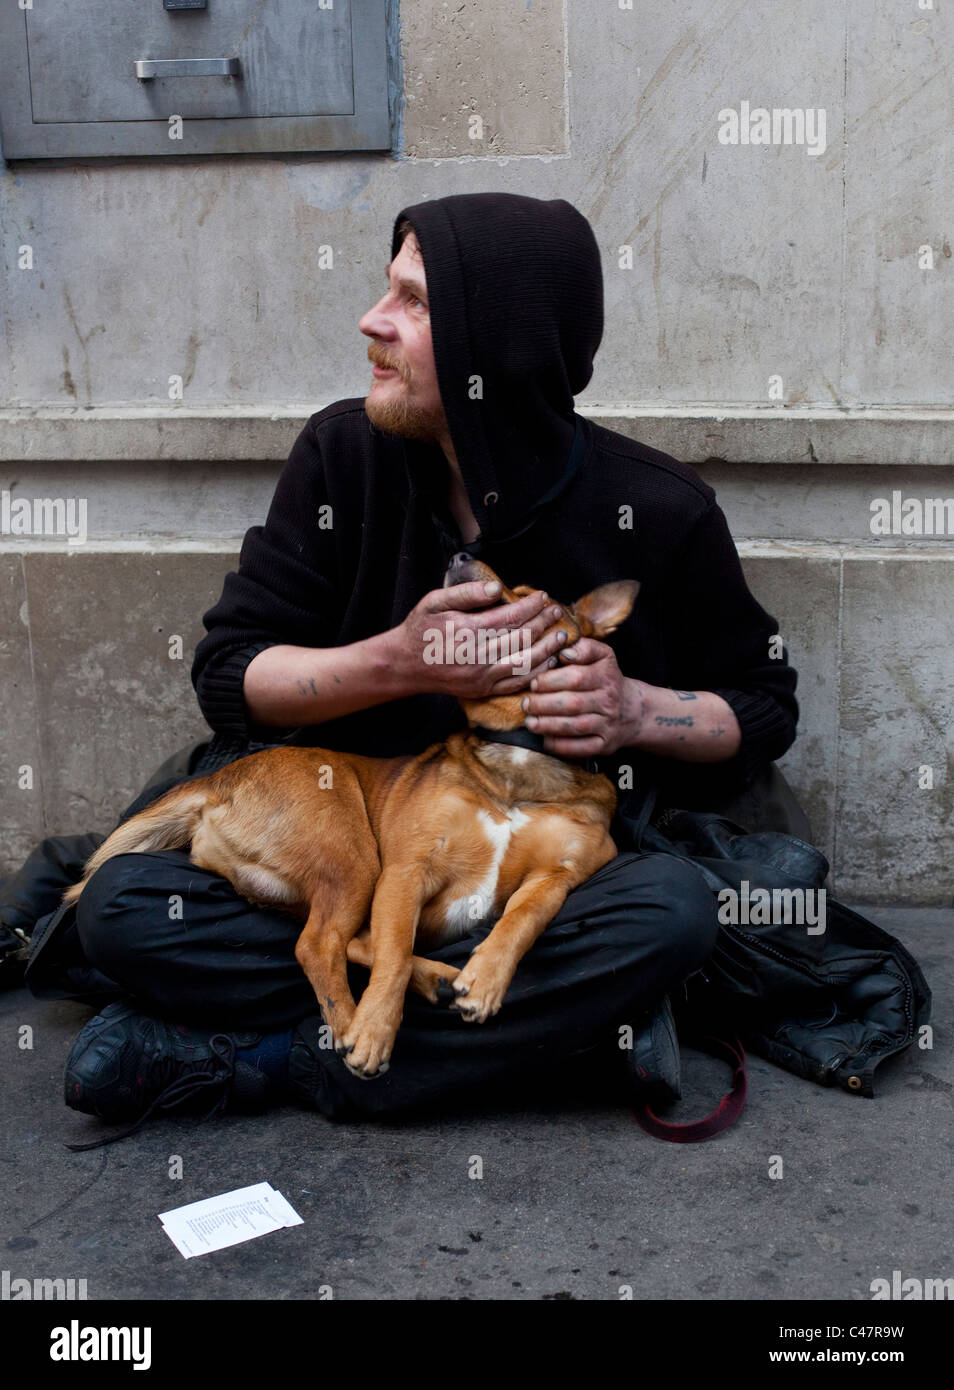 A homeless man begging for money on the pavement and holding his pet do, London, England, UK. - Stock Image